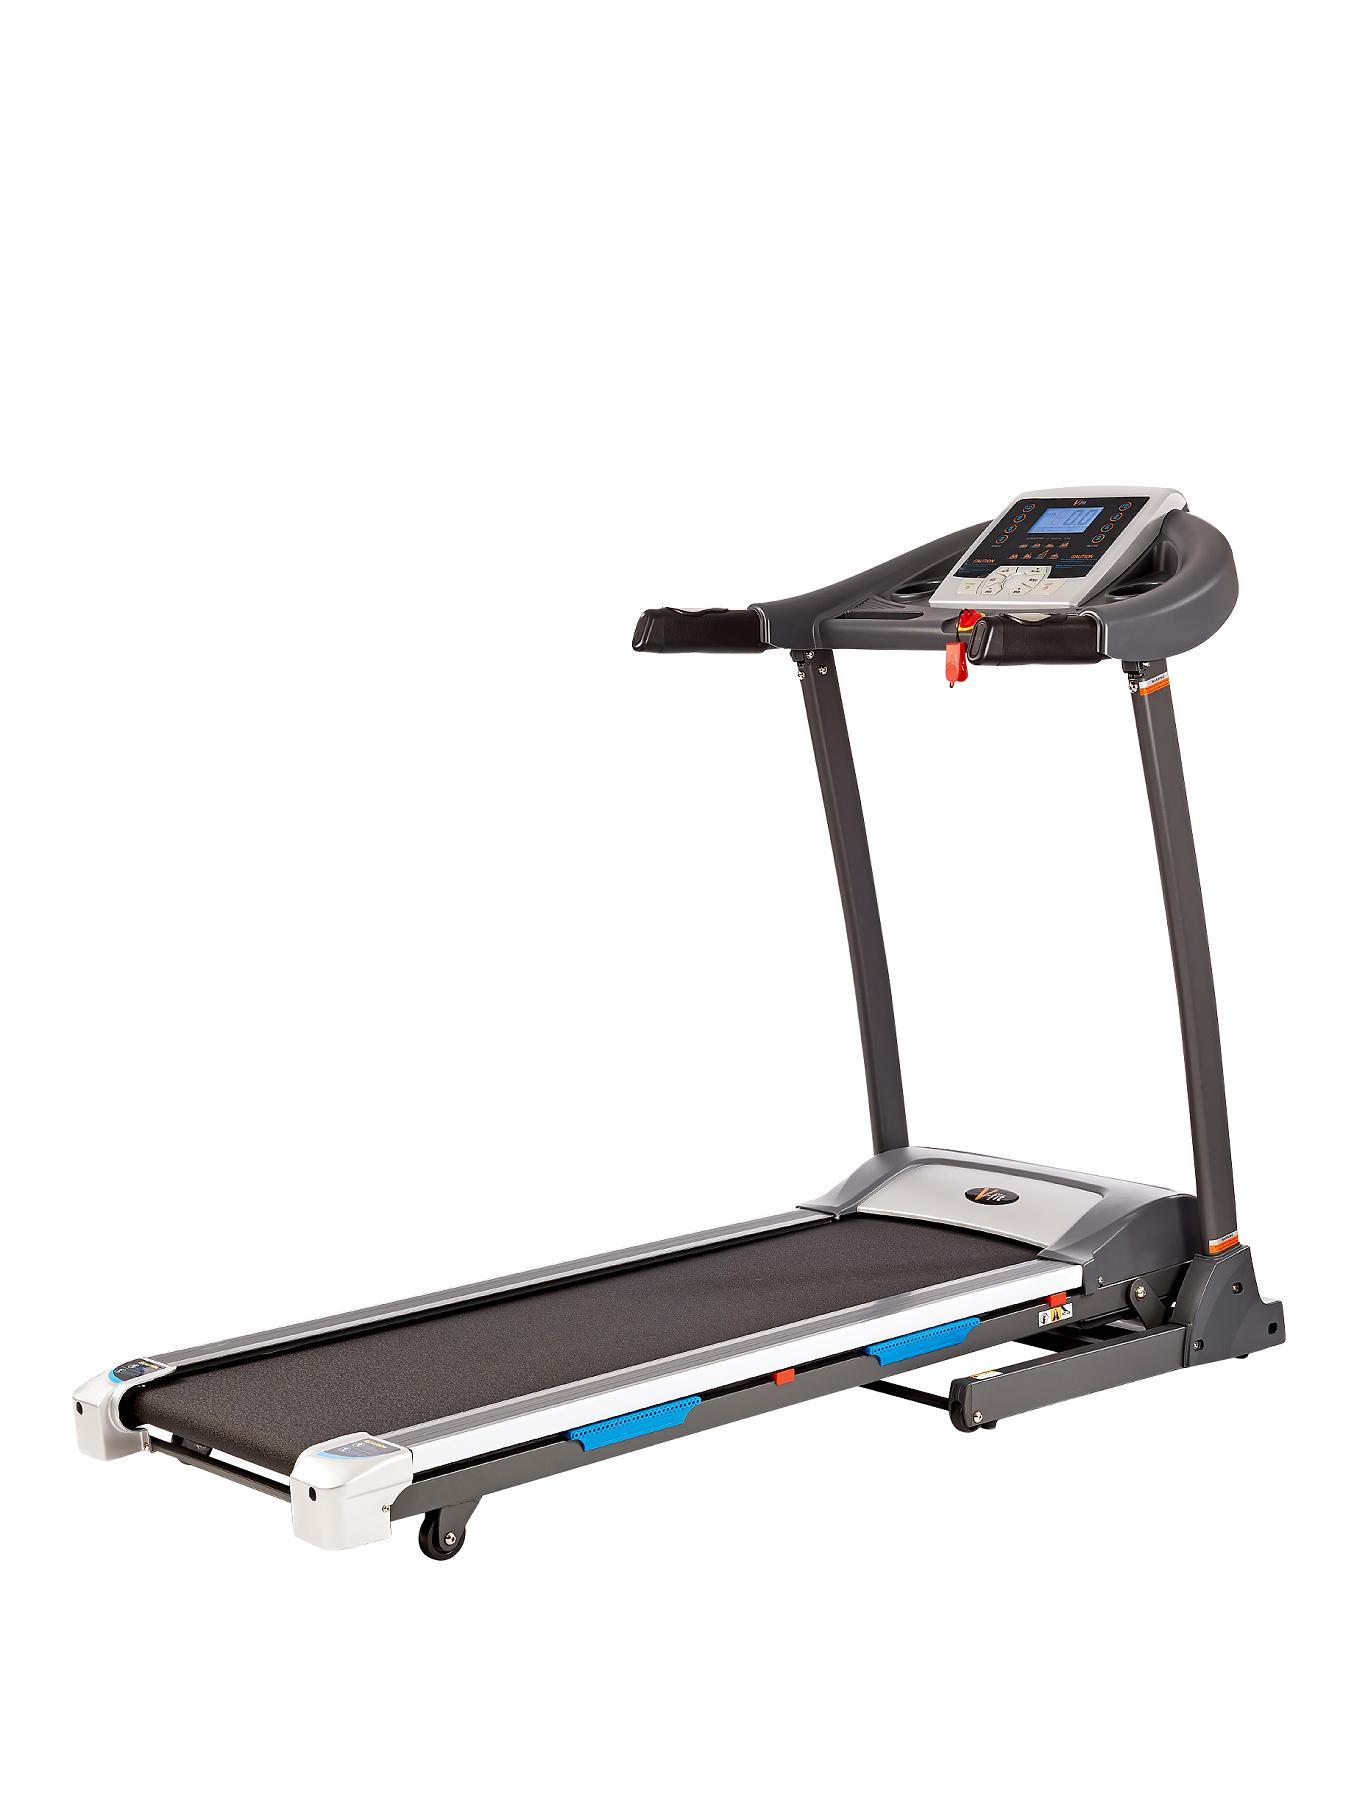 Pacemaster treadmills are well known in the fitness equipment industry for having first-rate quality. That's the reason why most of their machines receive excellent ratings and favorable reviews from treadmill experts.